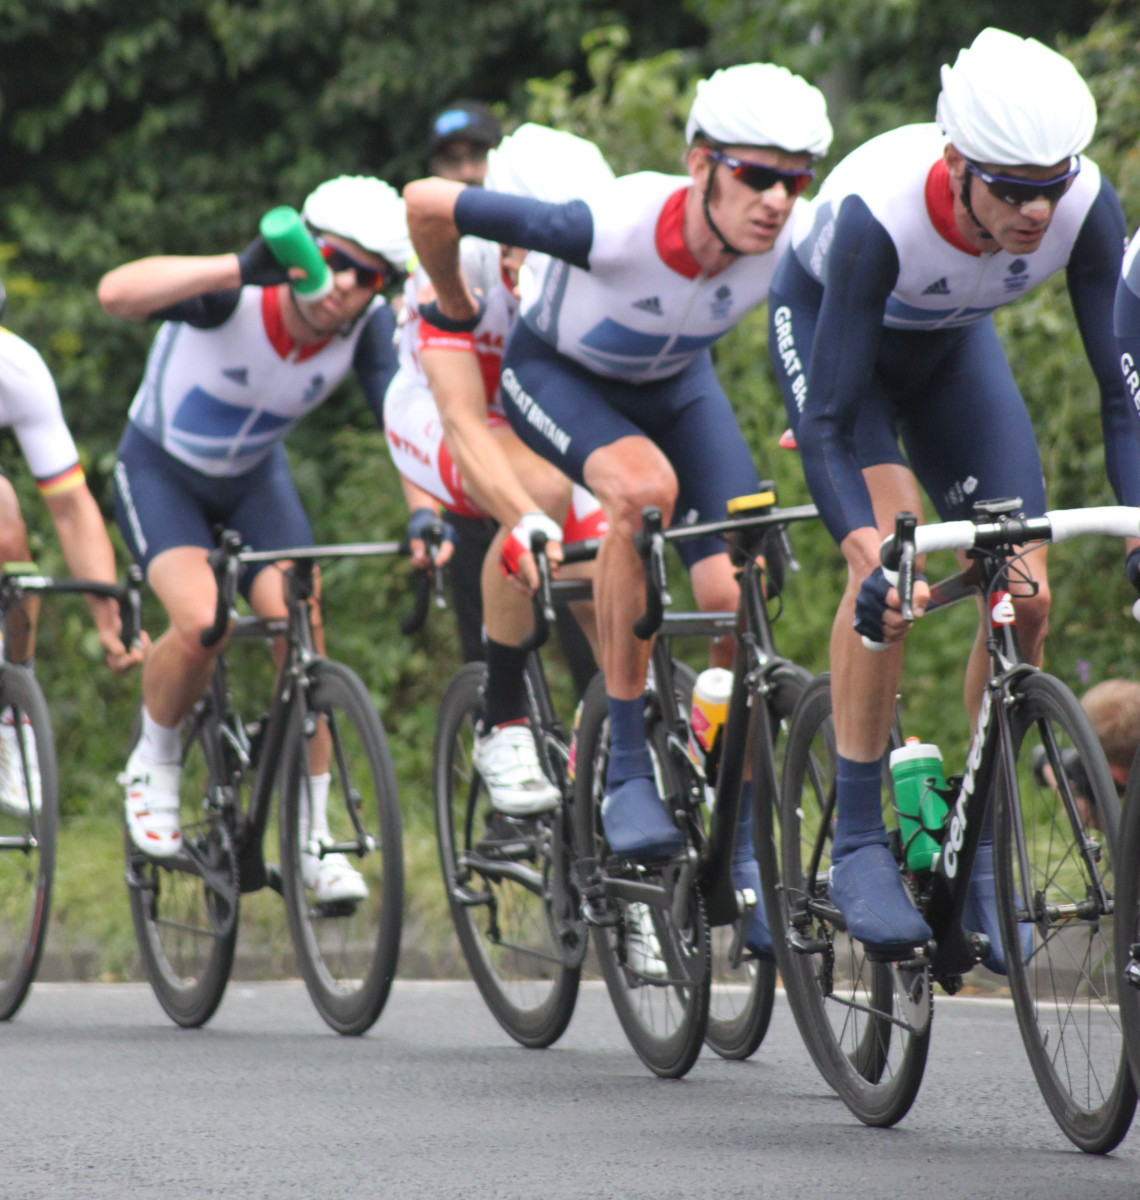 Mark Cavendish in his usual position at the end of his sprint train. Pictured at the London 2012 Olympic Road Race